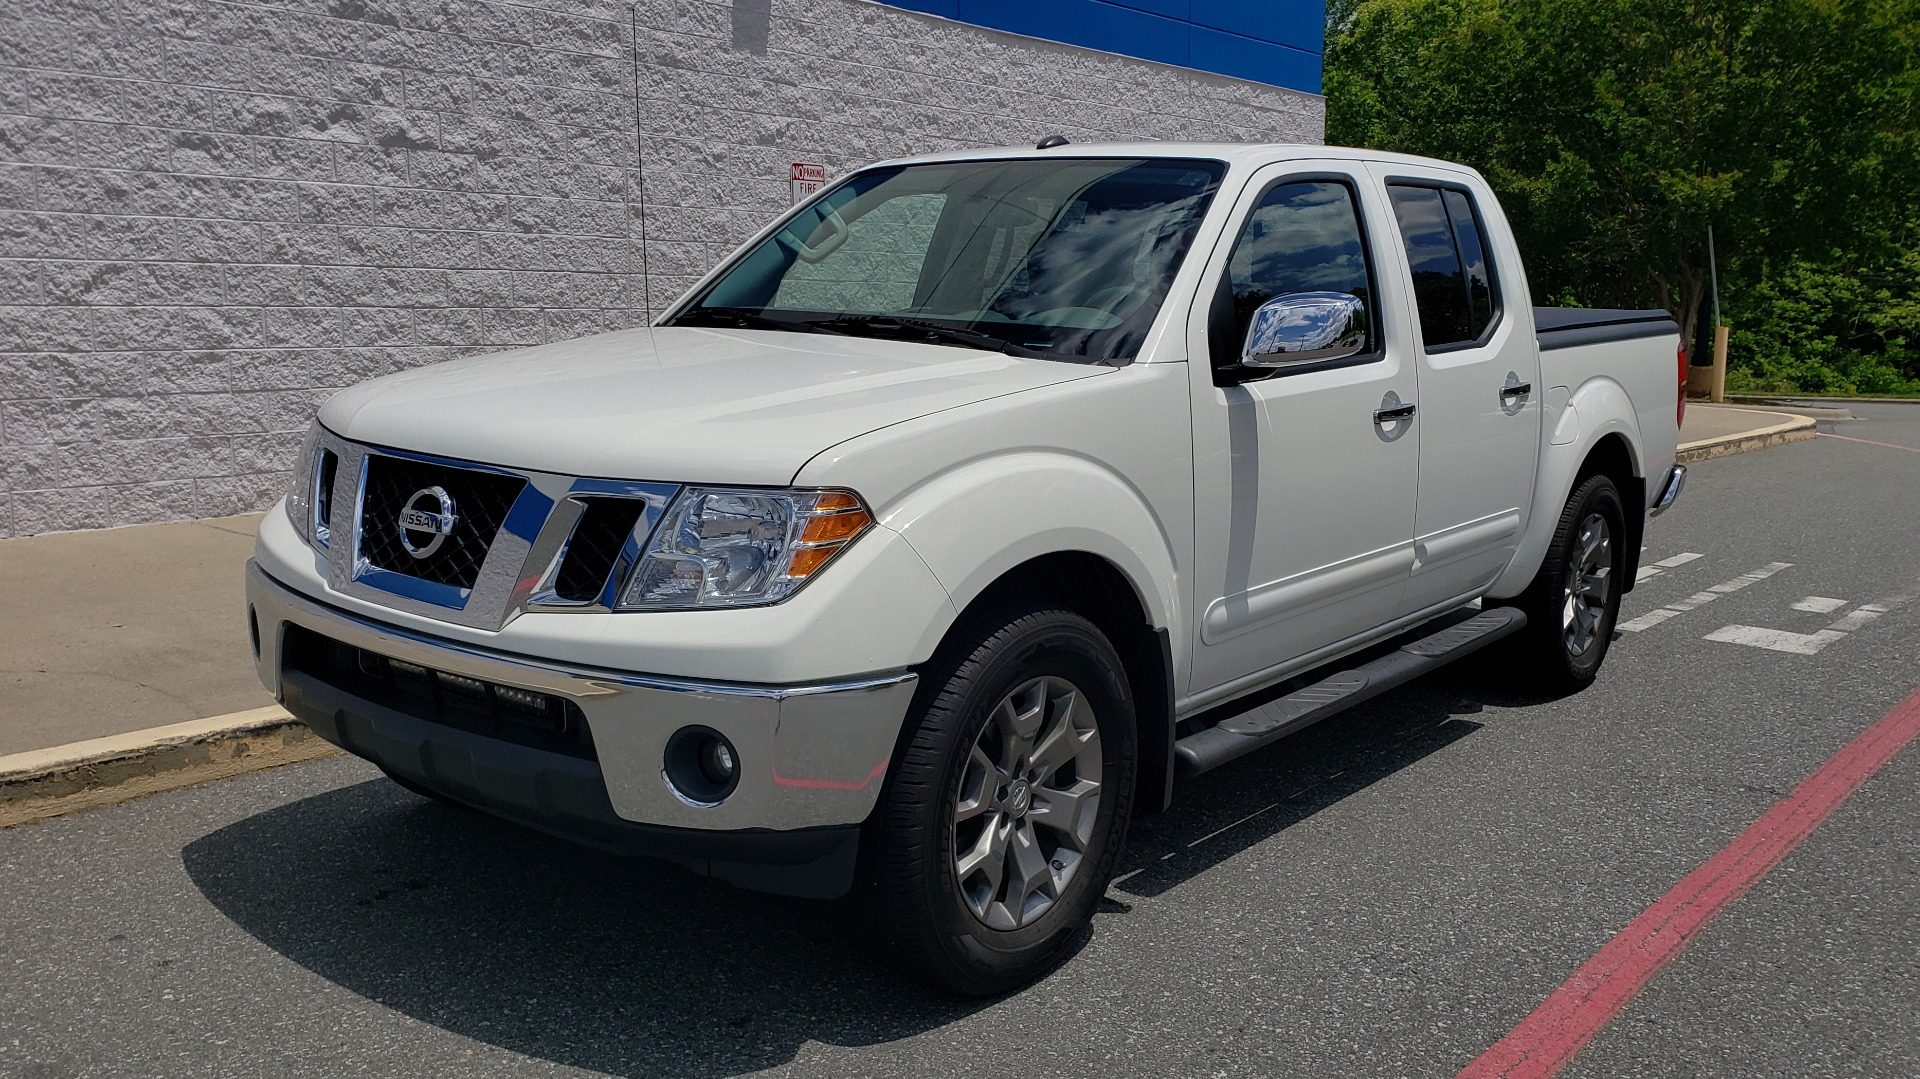 Used 2019 Nissan FRONTIER SL CREW CAB / 4X4 / NAV / SUNROOF / ROCKFORD FOSGATE / LOADED for sale $31,495 at Formula Imports in Charlotte NC 28227 5